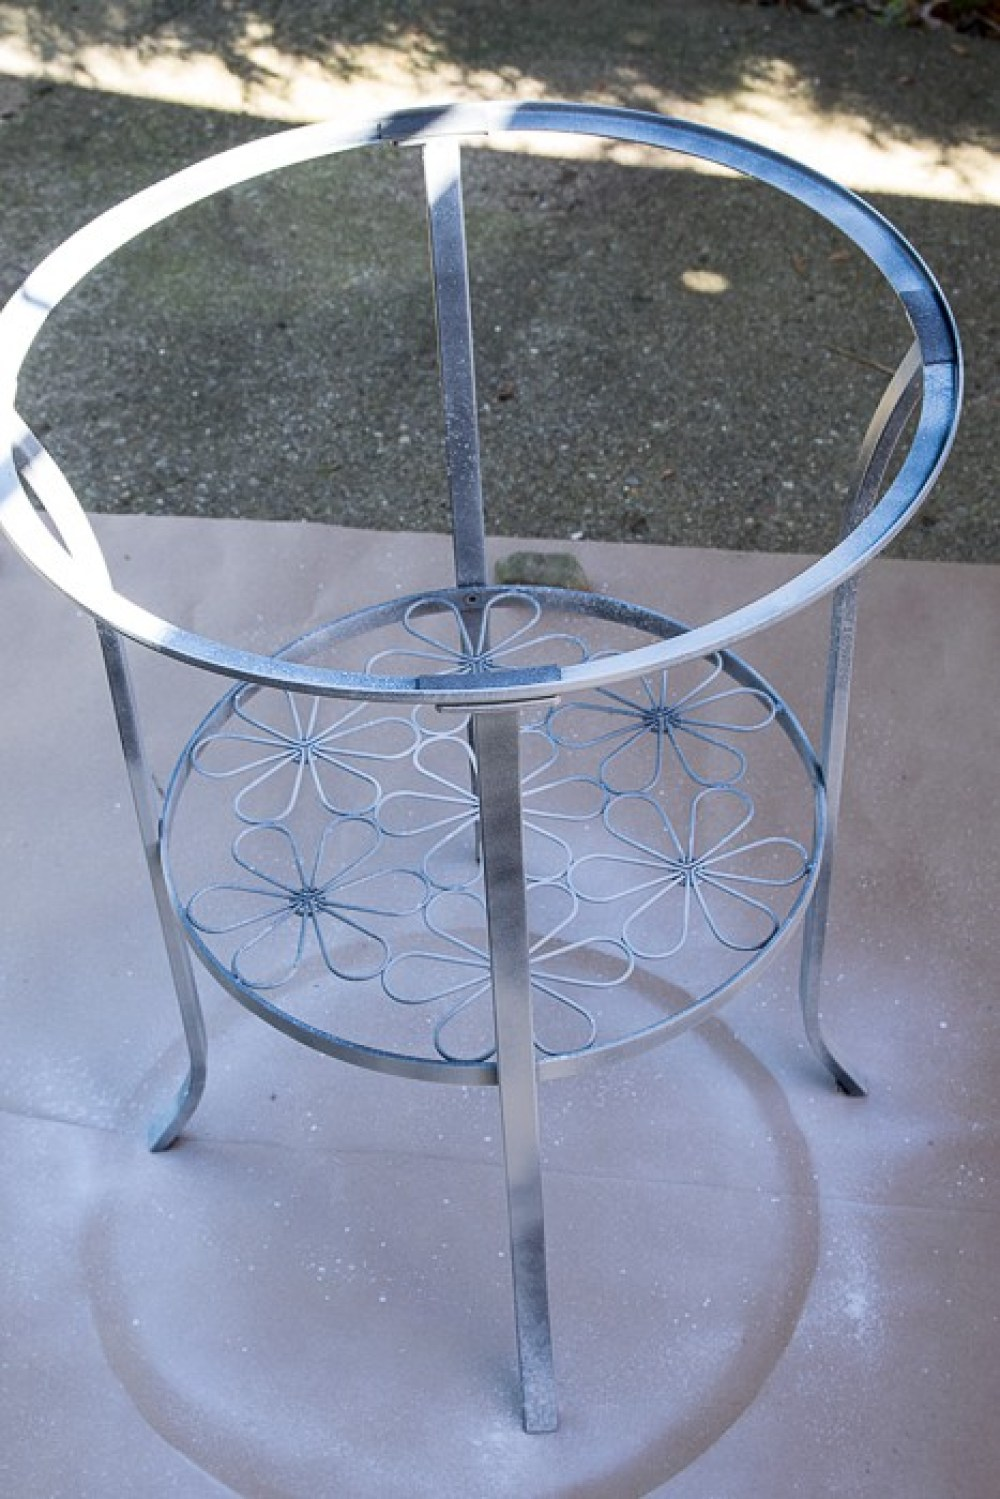 Picture of upright round metal table with primer coat sprayed on